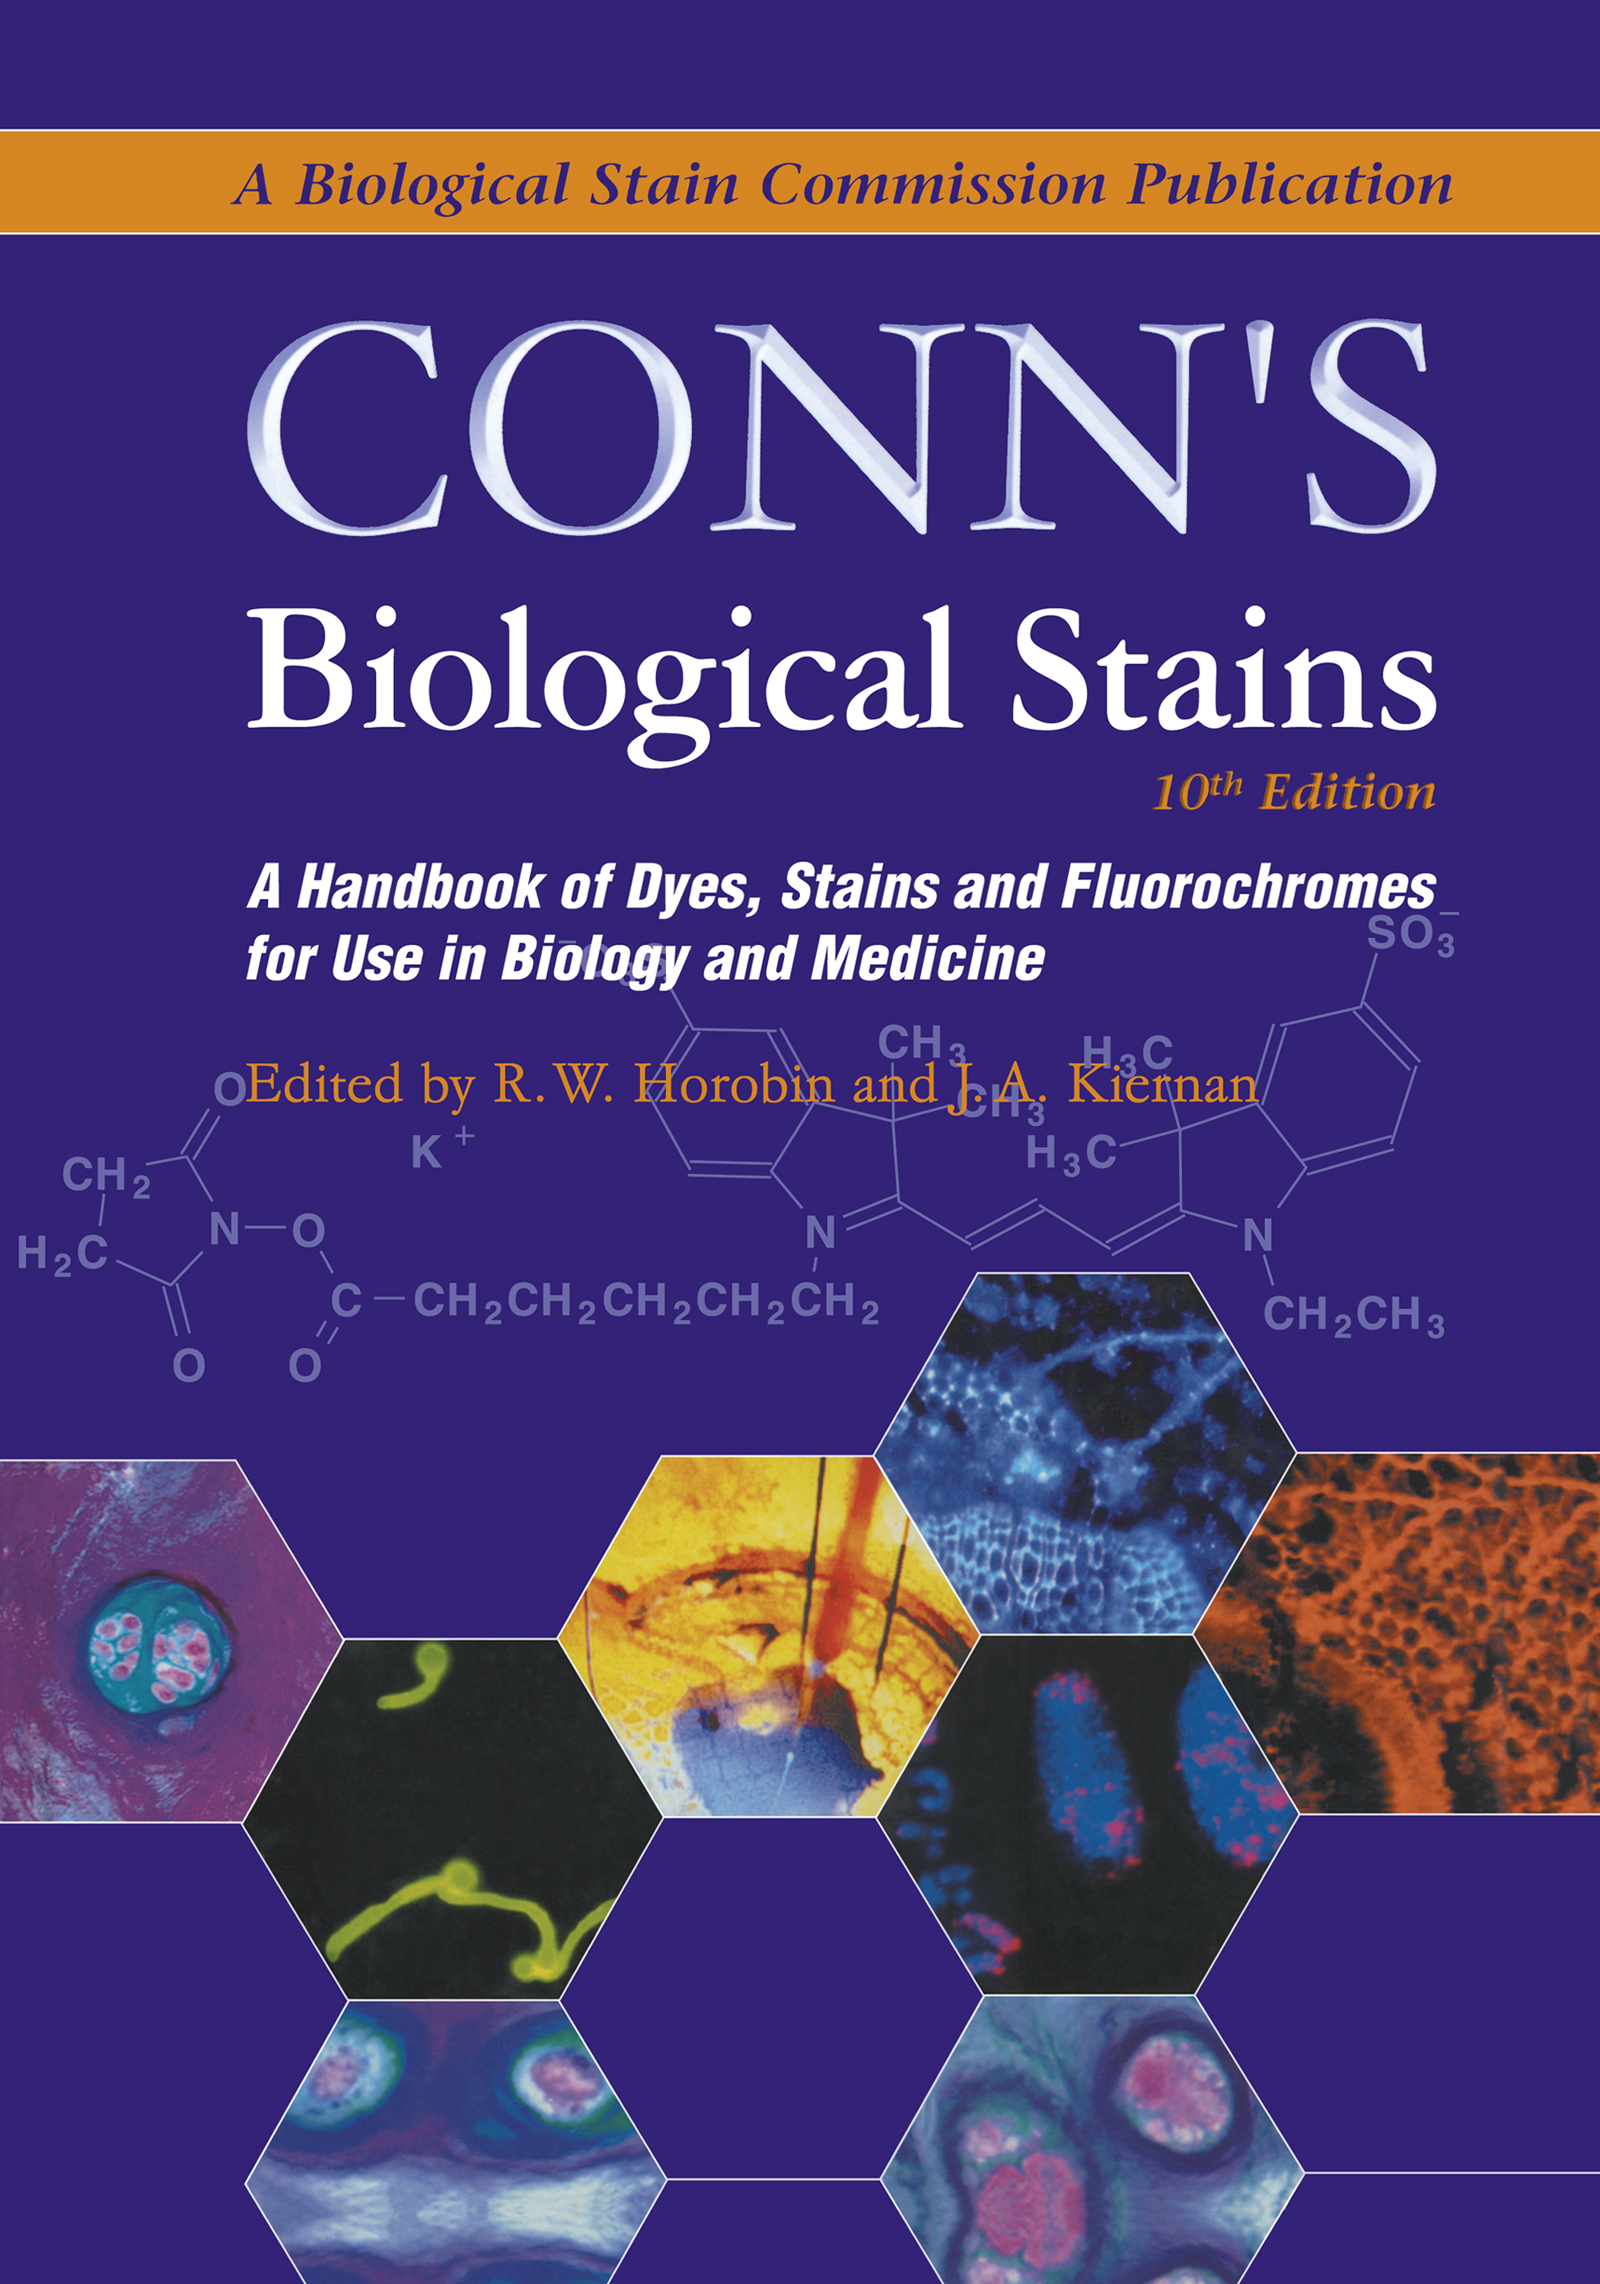 Conn's Biological Stains